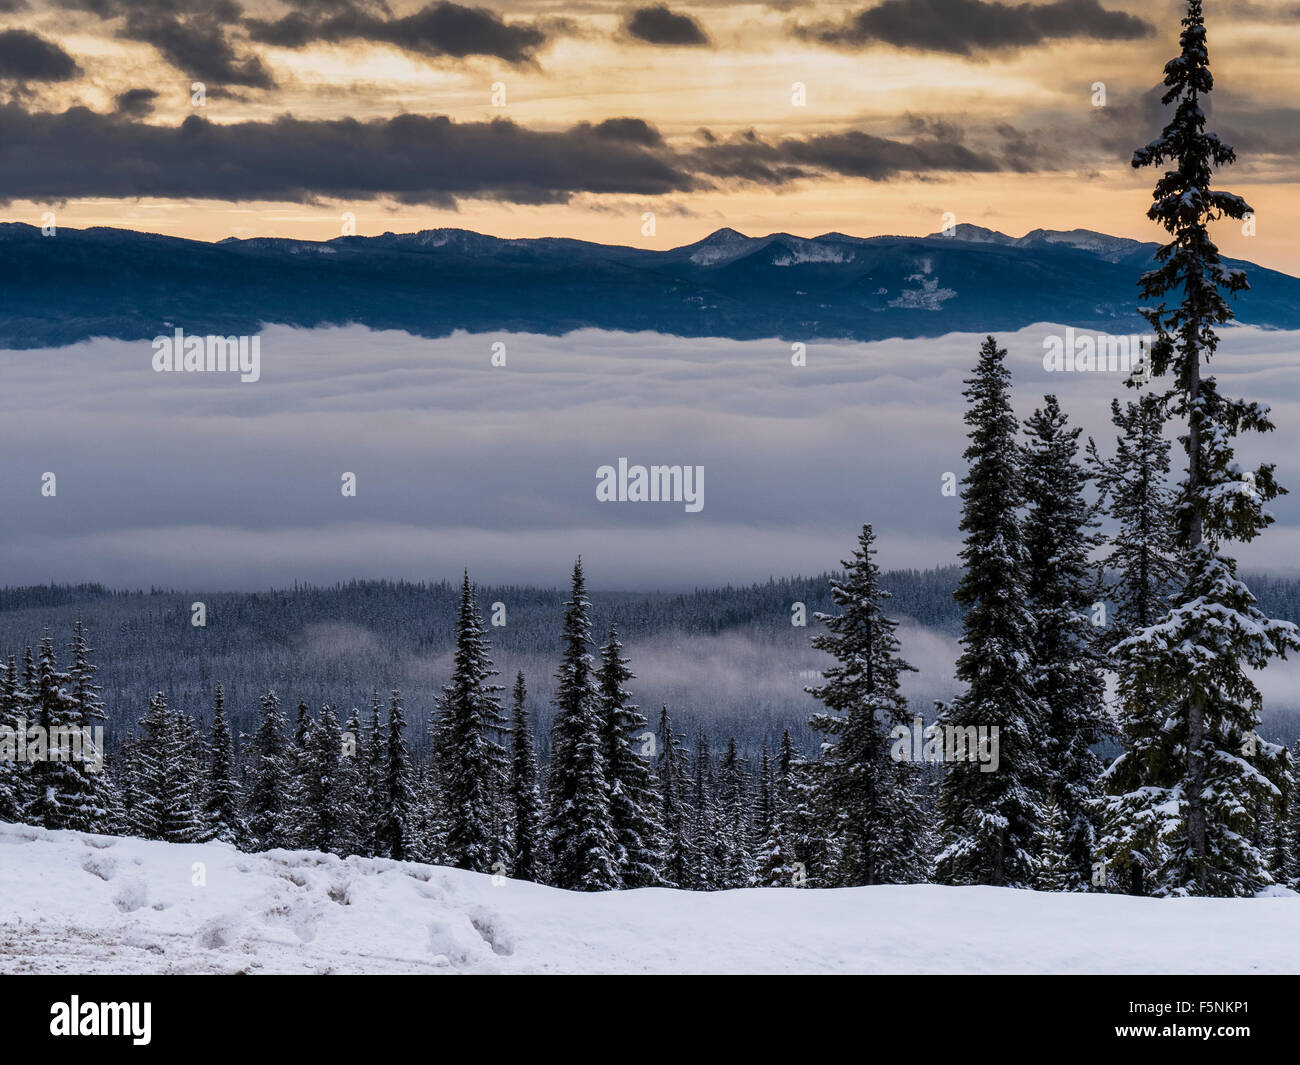 Clouds and mountains, Big White Ski Resort, British Columbia, Canada. - Stock Image